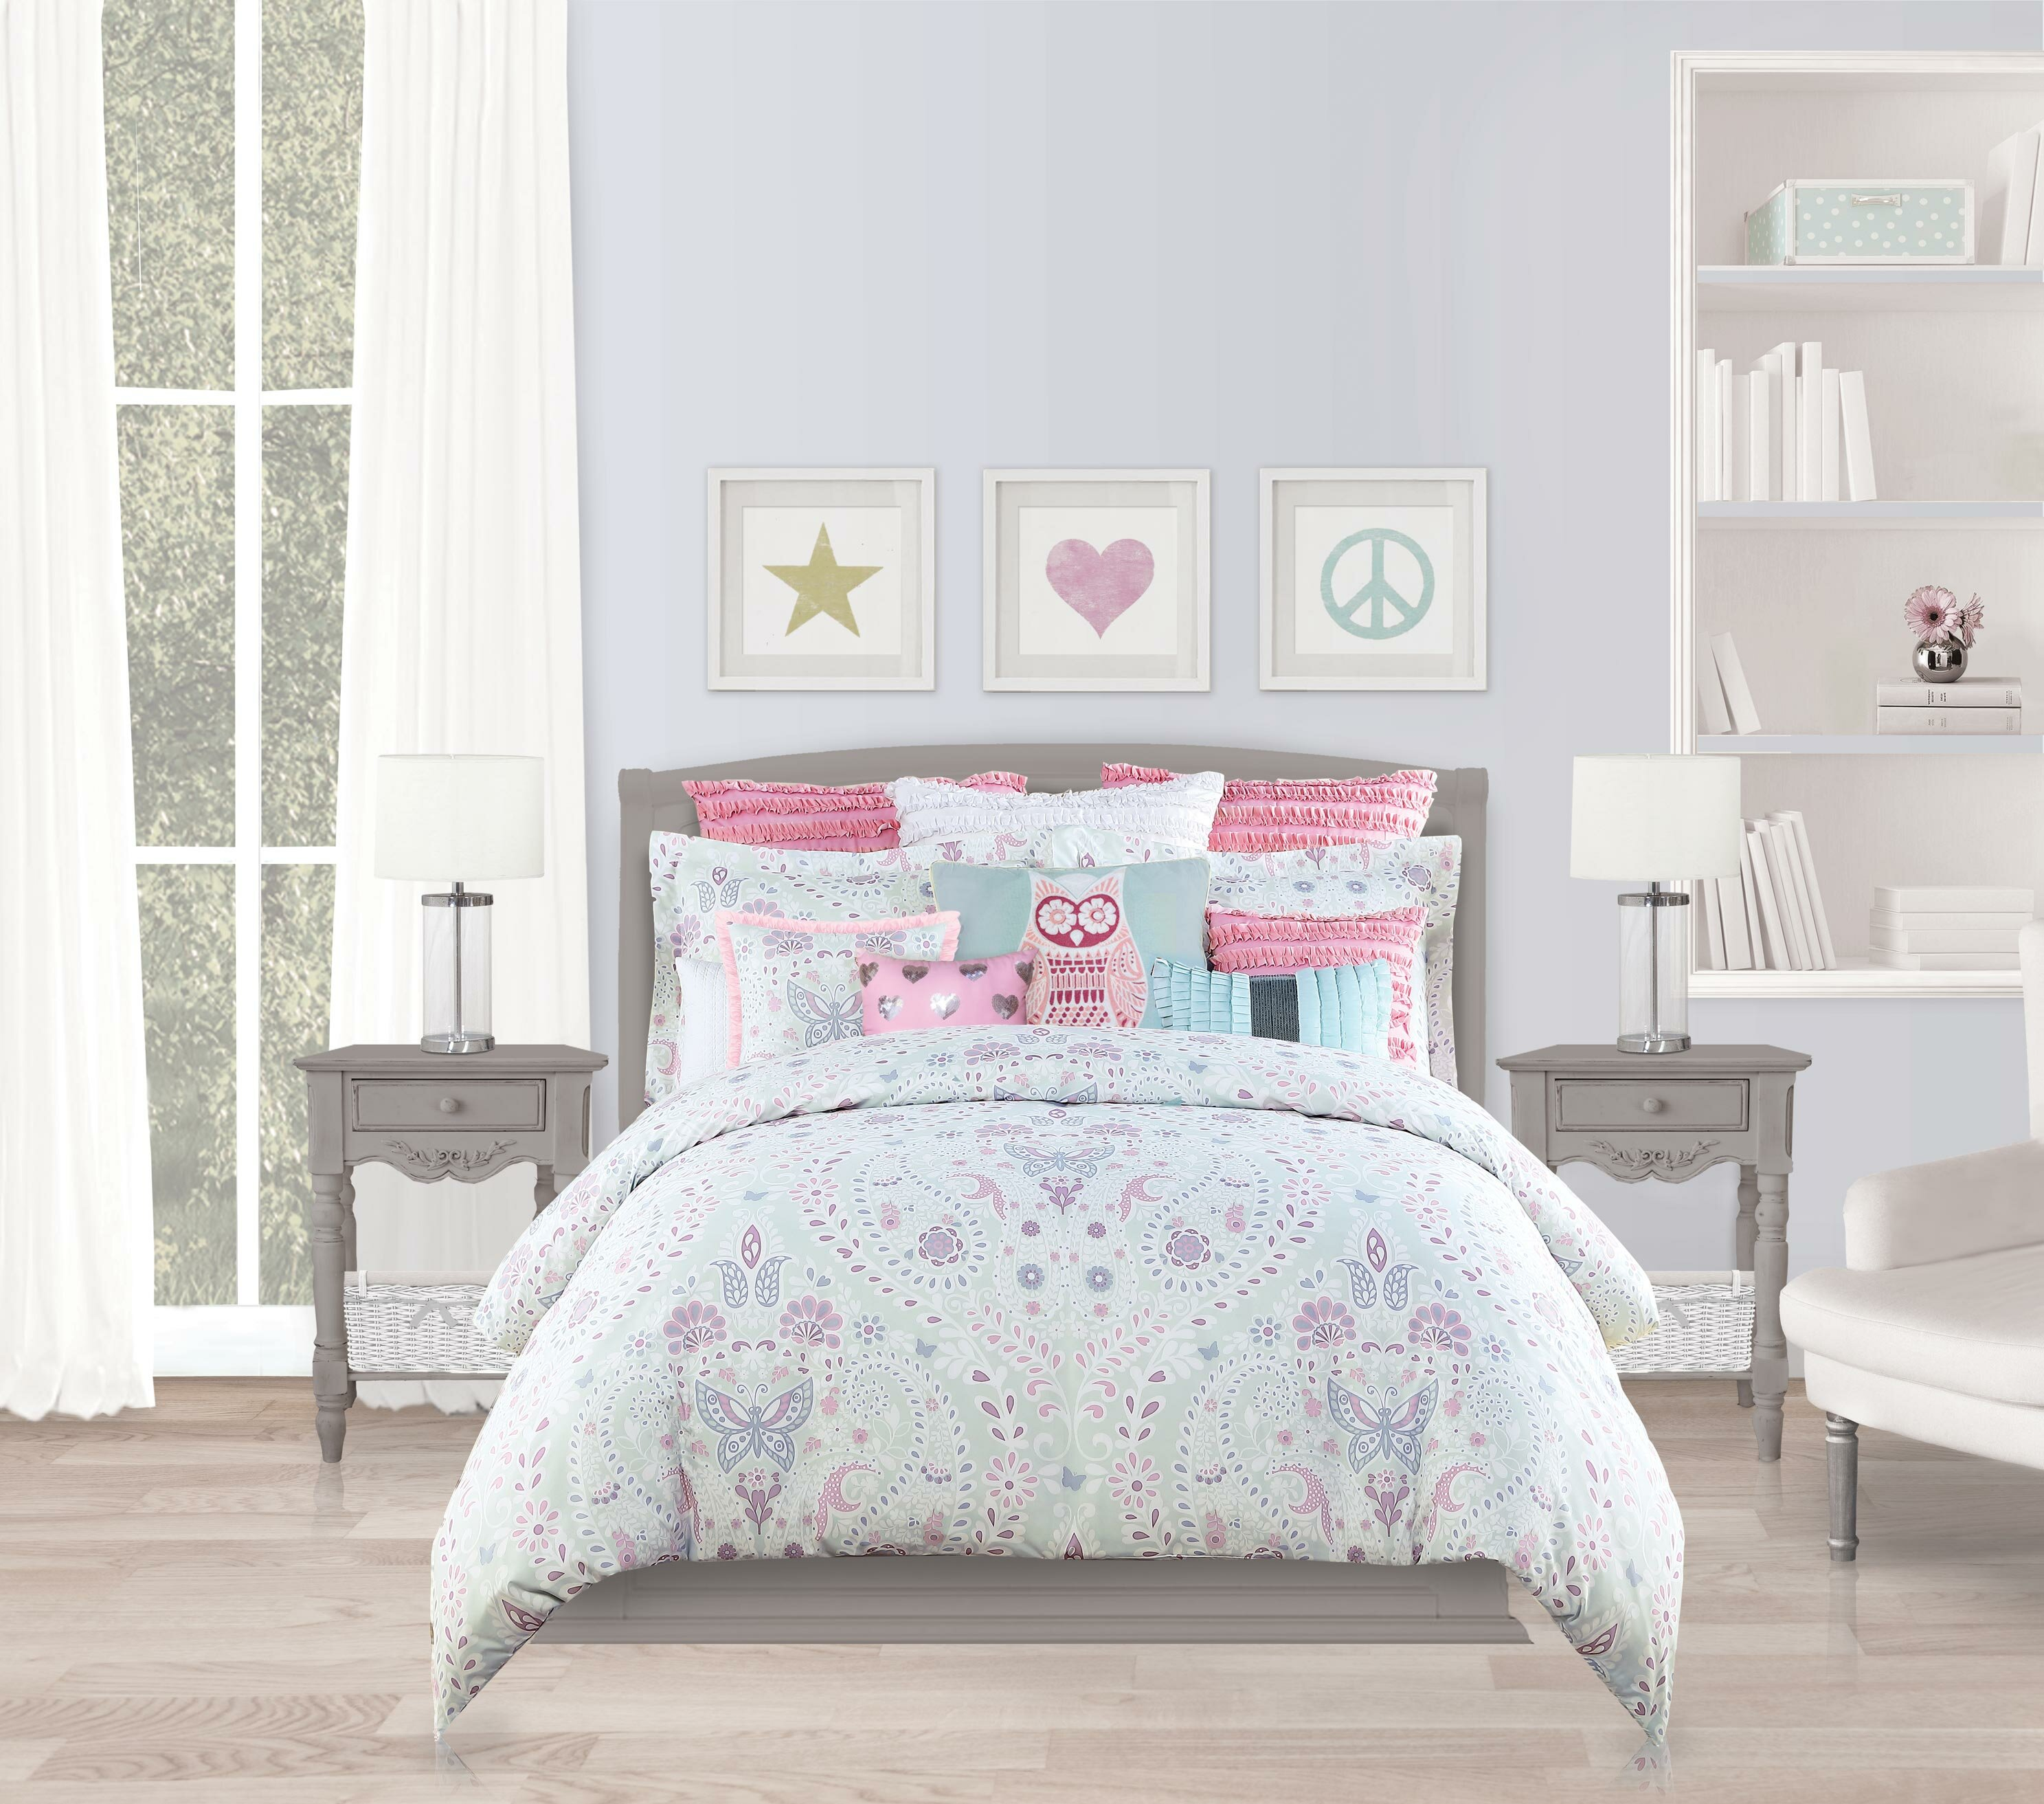 gallery purple comforter bed white glass sweet set and for comforters pink twin nuance bring with butterfly interior sheer on piece wooden of photos window frame combined bedroom bedding magnificent your